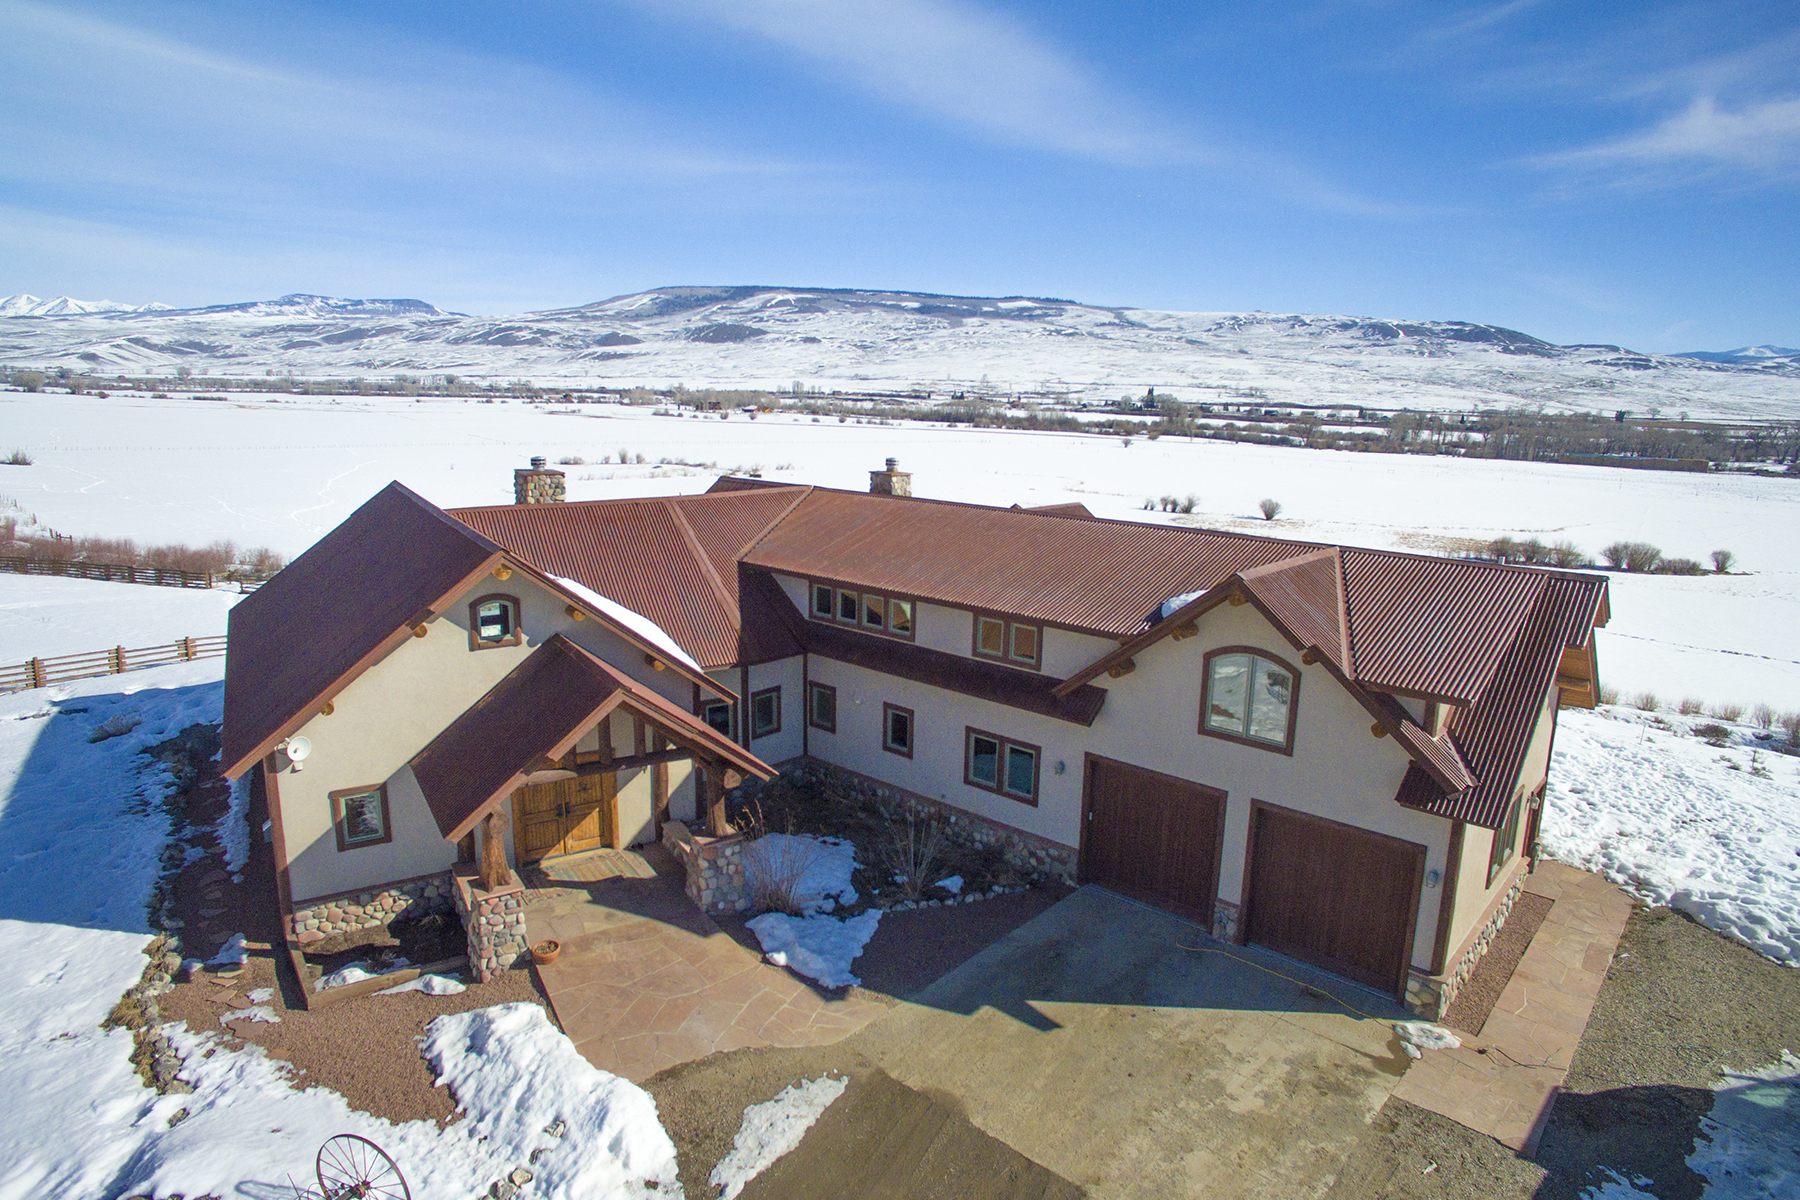 Single Family Home for Sale at Ohio Creek Valley Ranch 1141 County Road 818 Gunnison, Colorado, 81230 United States